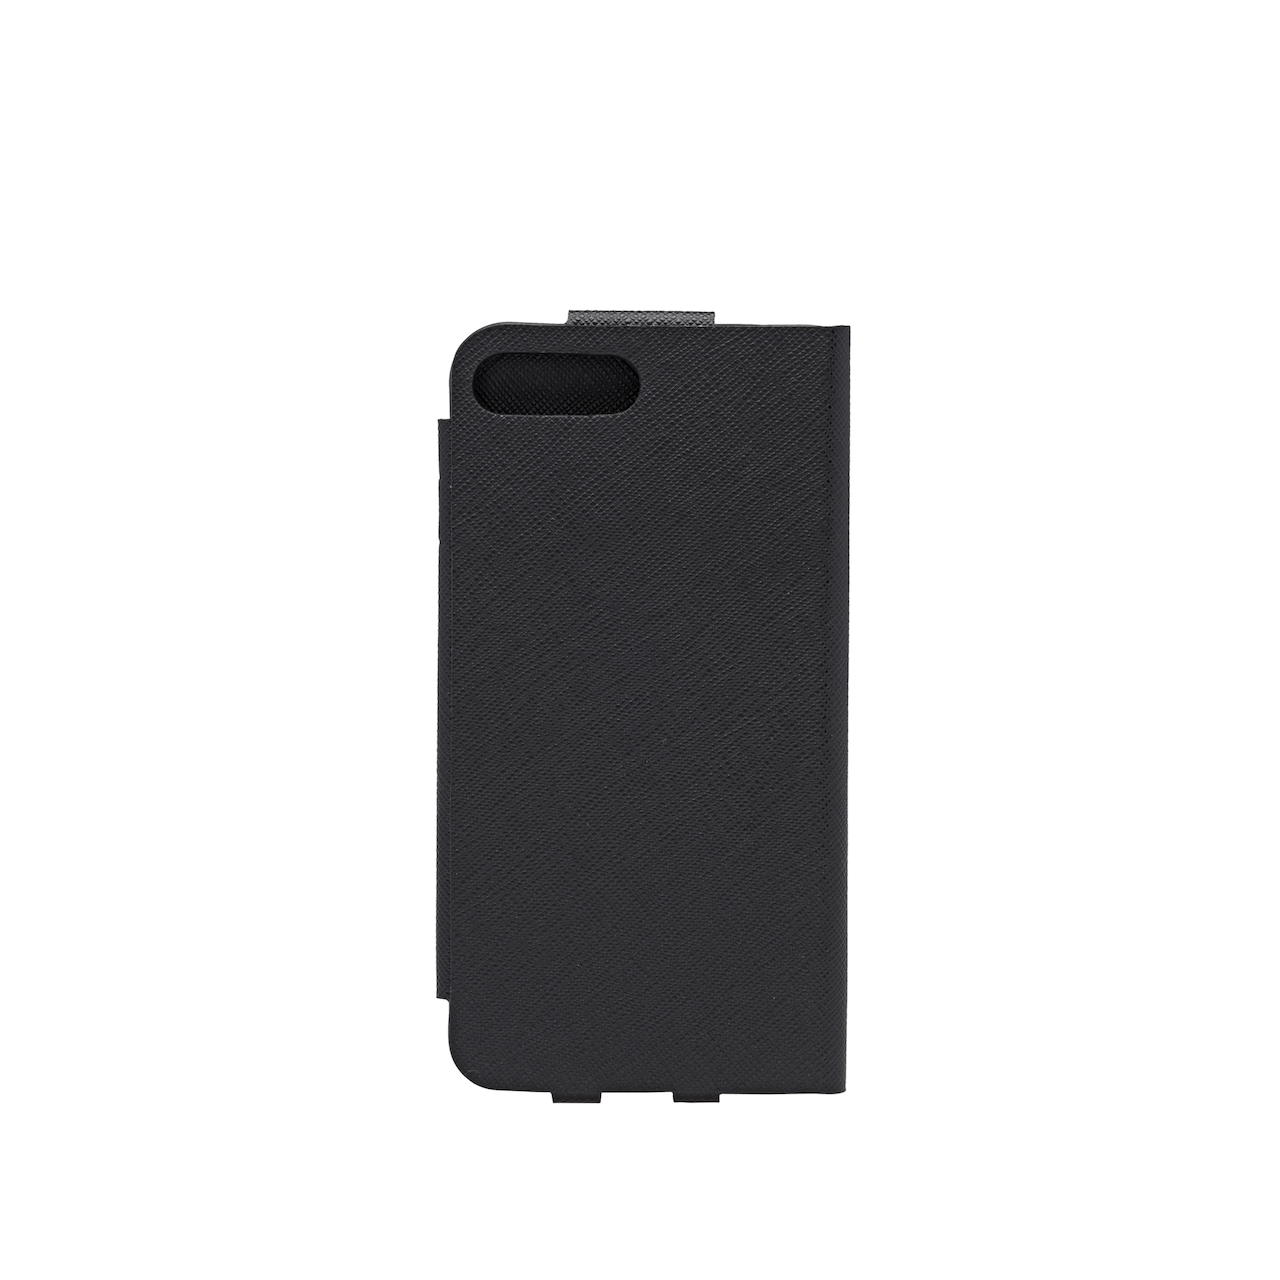 iPhone 7 Plus and 8 Plus cover